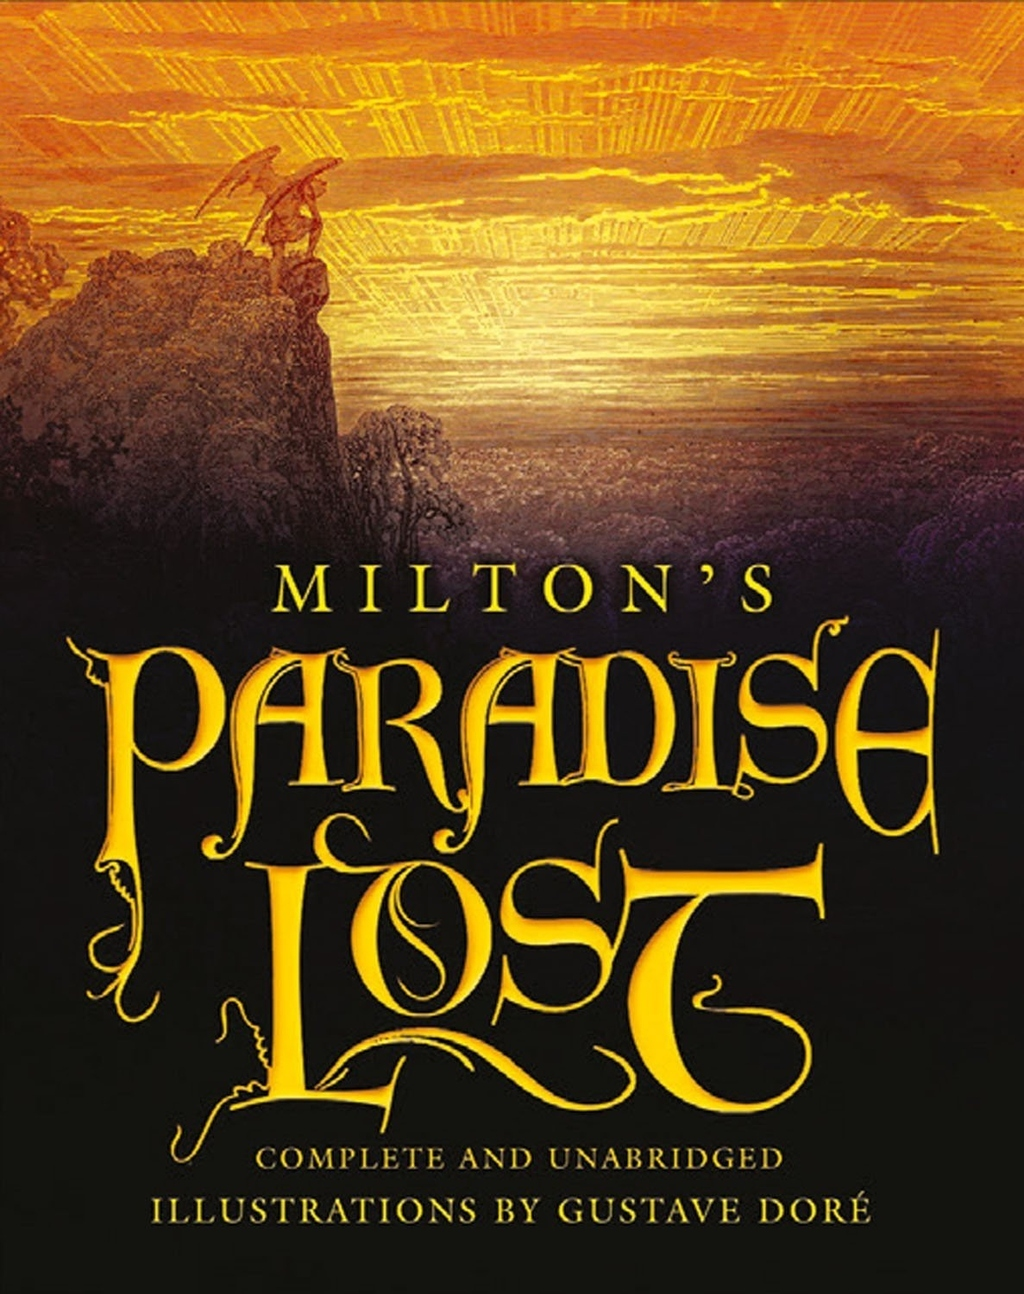 essays on paradise lost book 9 Celebrate the 350th anniversary of milton's paradise lost in 2017 with paradise lost book £ 9 99 add buy as an related books essays and literary.